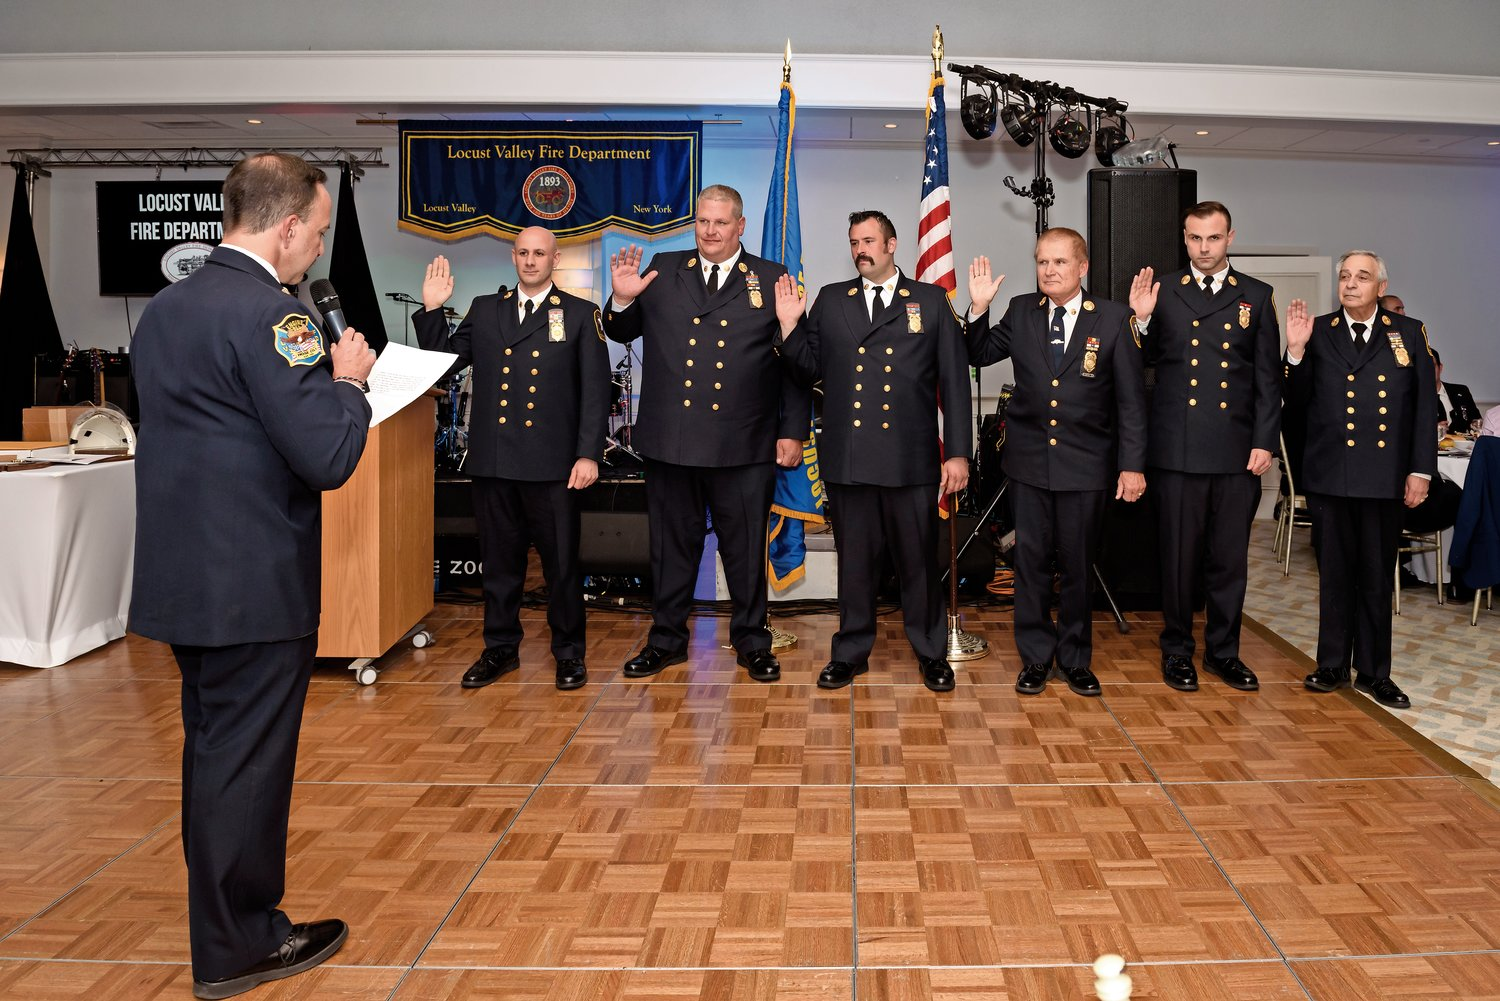 Ex-chief Jeffery Baker, left, installed the new chief, Andrew Akapnitis, and department officers James Neumeyer, Ralph Longo, Jeffrey Converse, Matthew Stimola and Michael Bono.